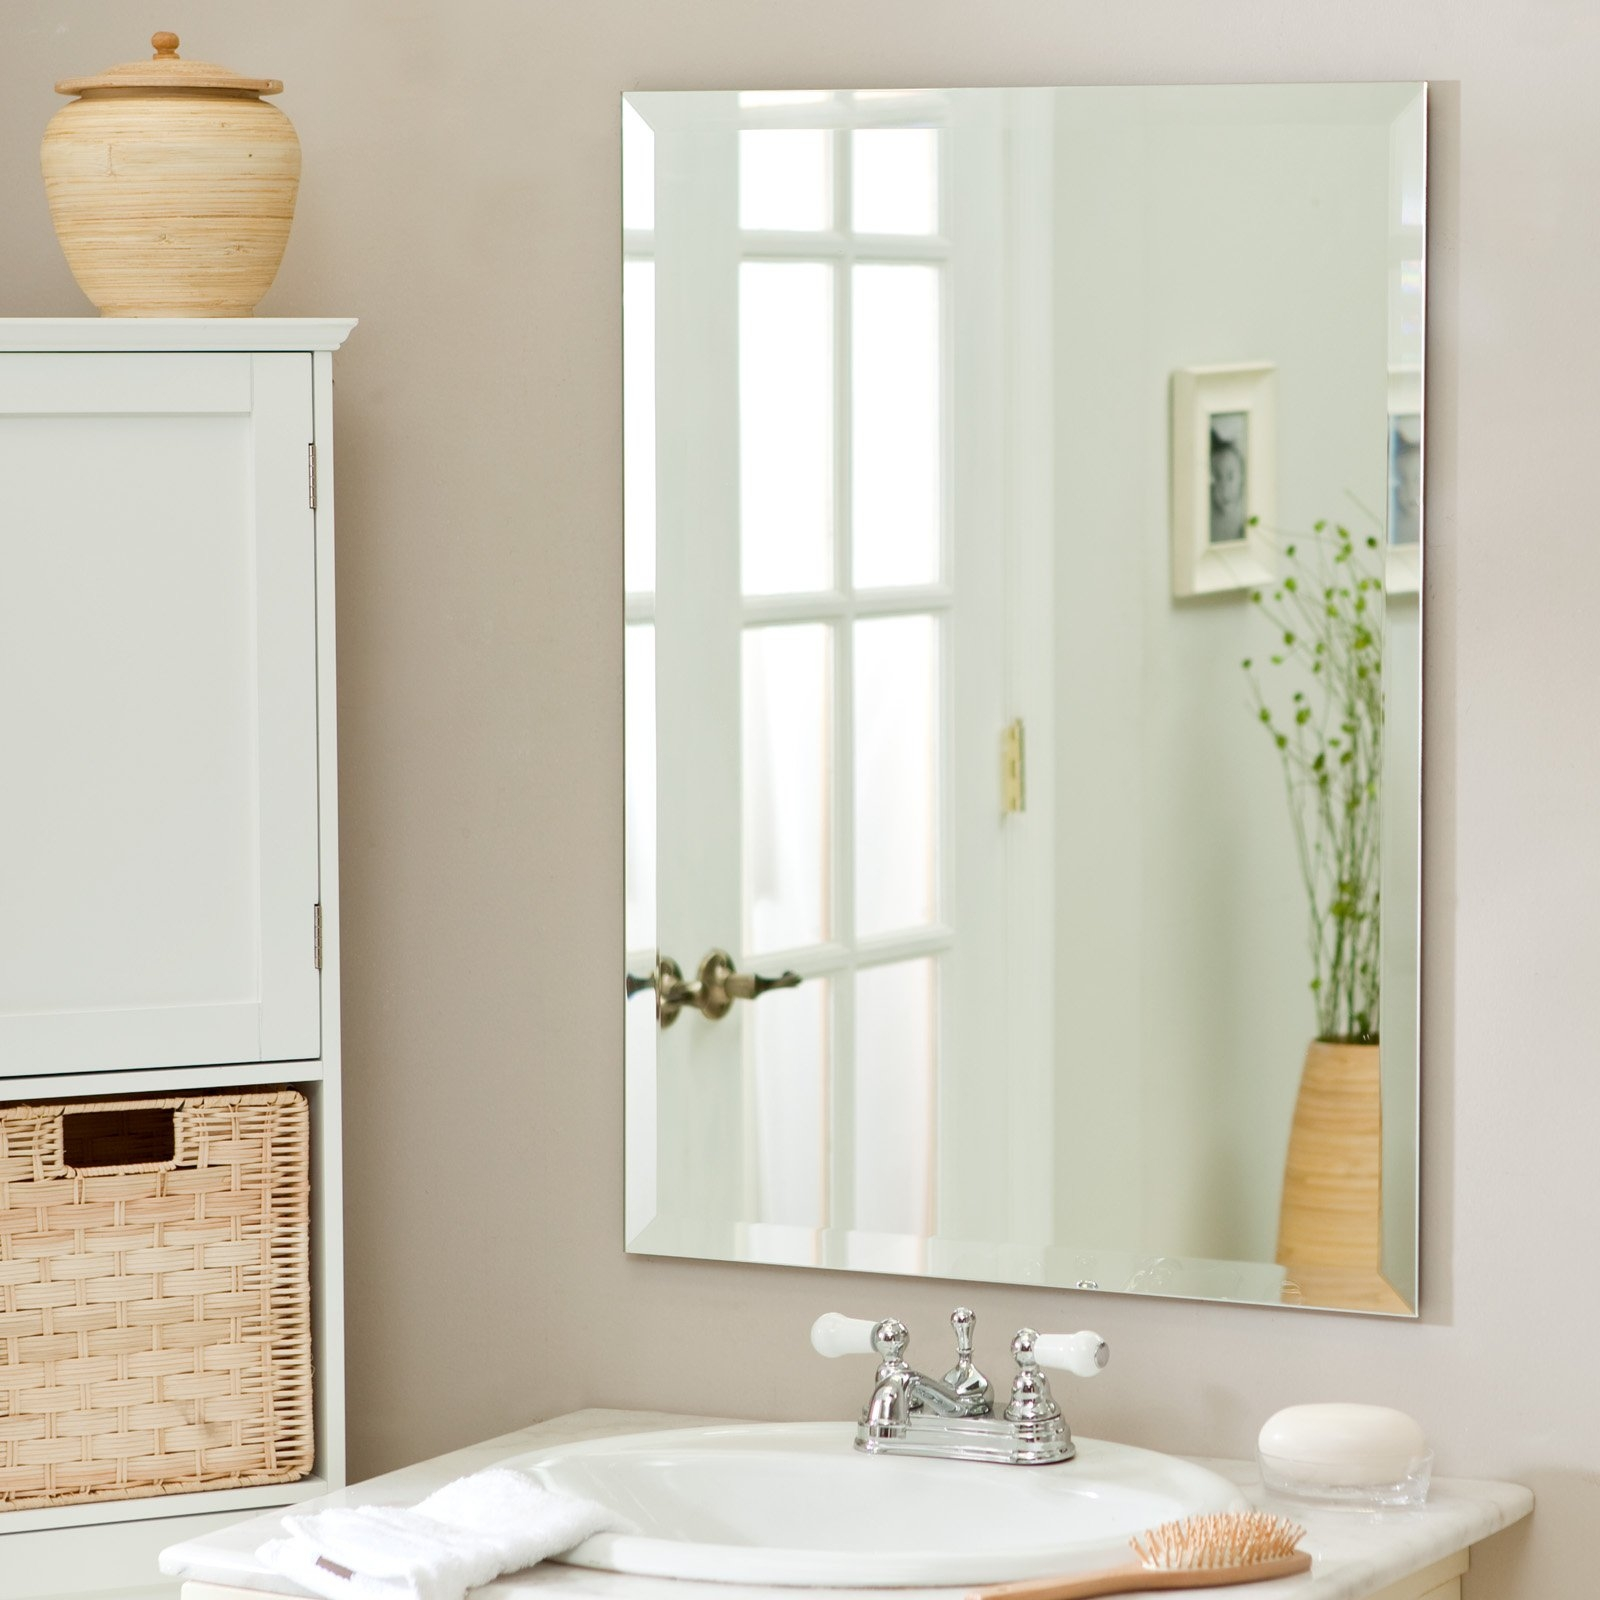 Decorative Bathroom Mirrors Decorative Bathroom Mirrors Sale Intended For Antique Bathroom Mirrors Sale (Image 11 of 15)